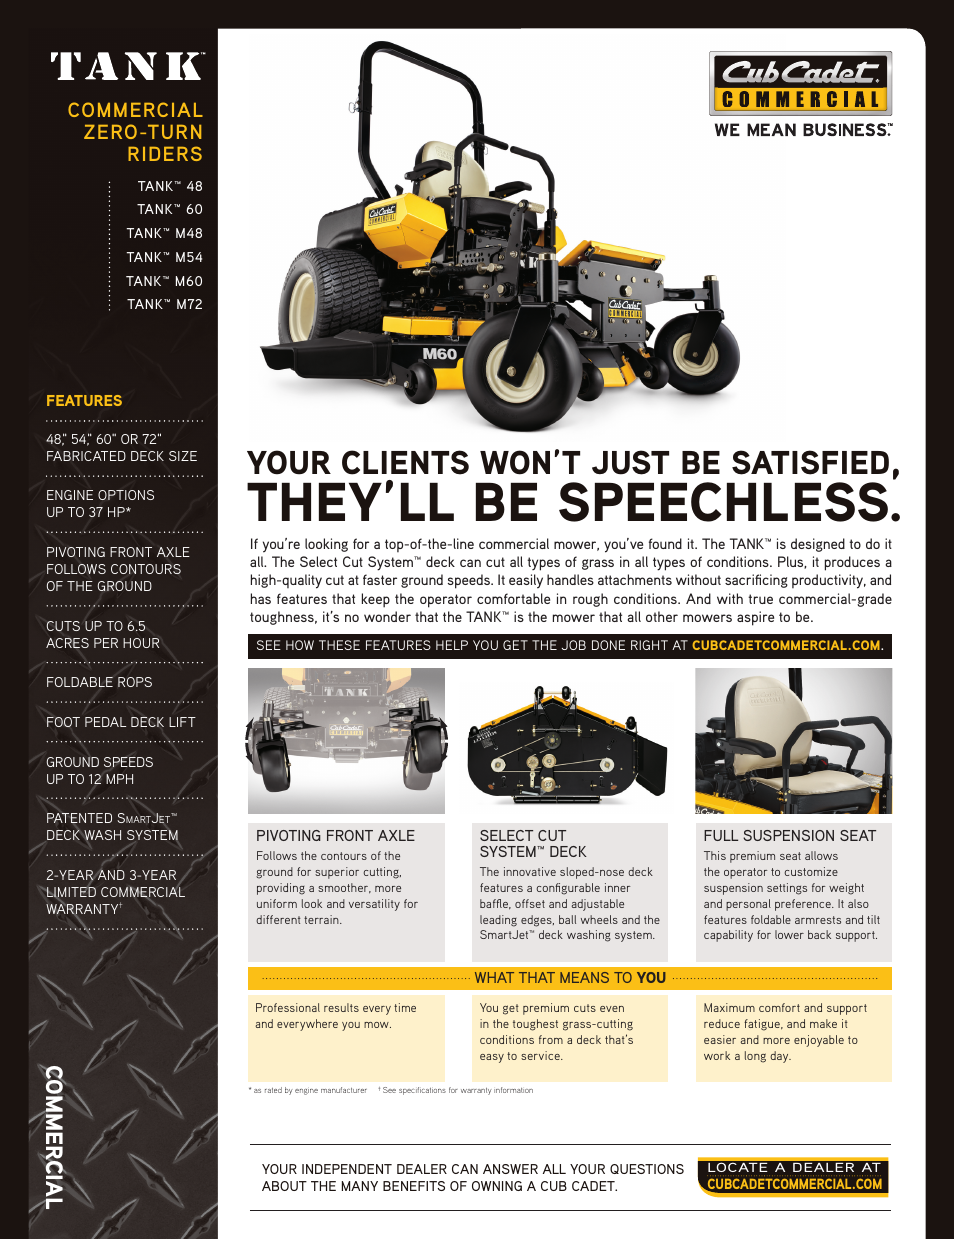 Cub Cadet TANK 48 User Manual | 4 pages | Also for: TANK 60, TANK M48, TANK  M72, TANK M54